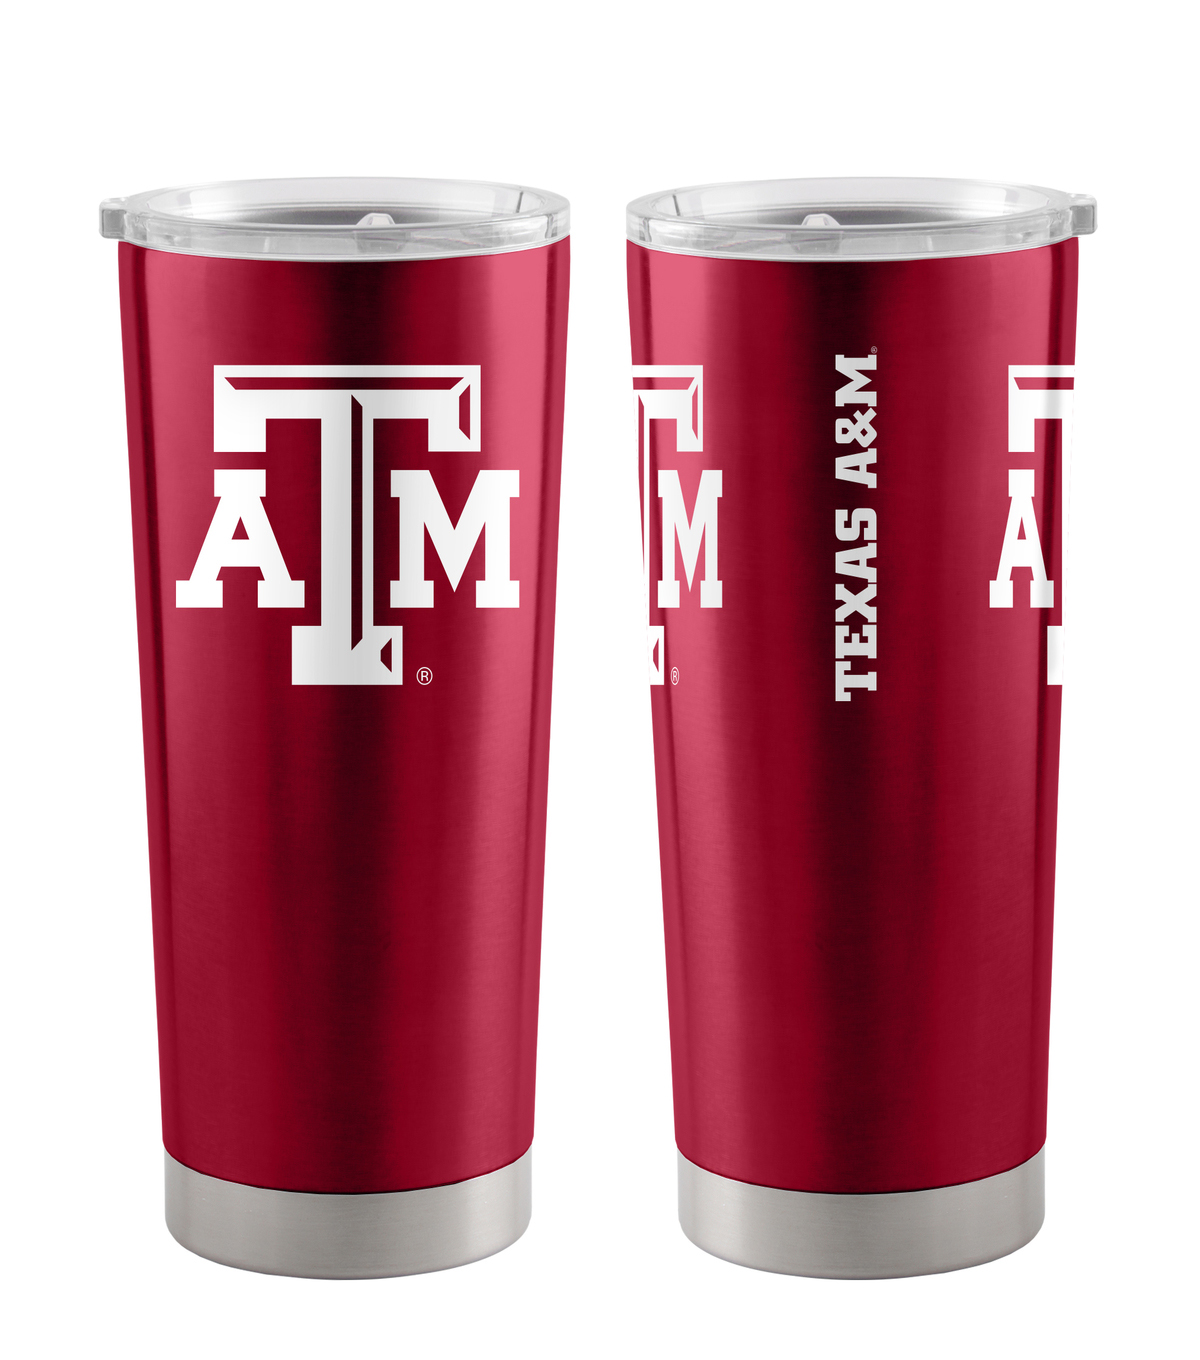 Texas A&M University Aggies 20 oz Insulated Stainless Steel Tumbler